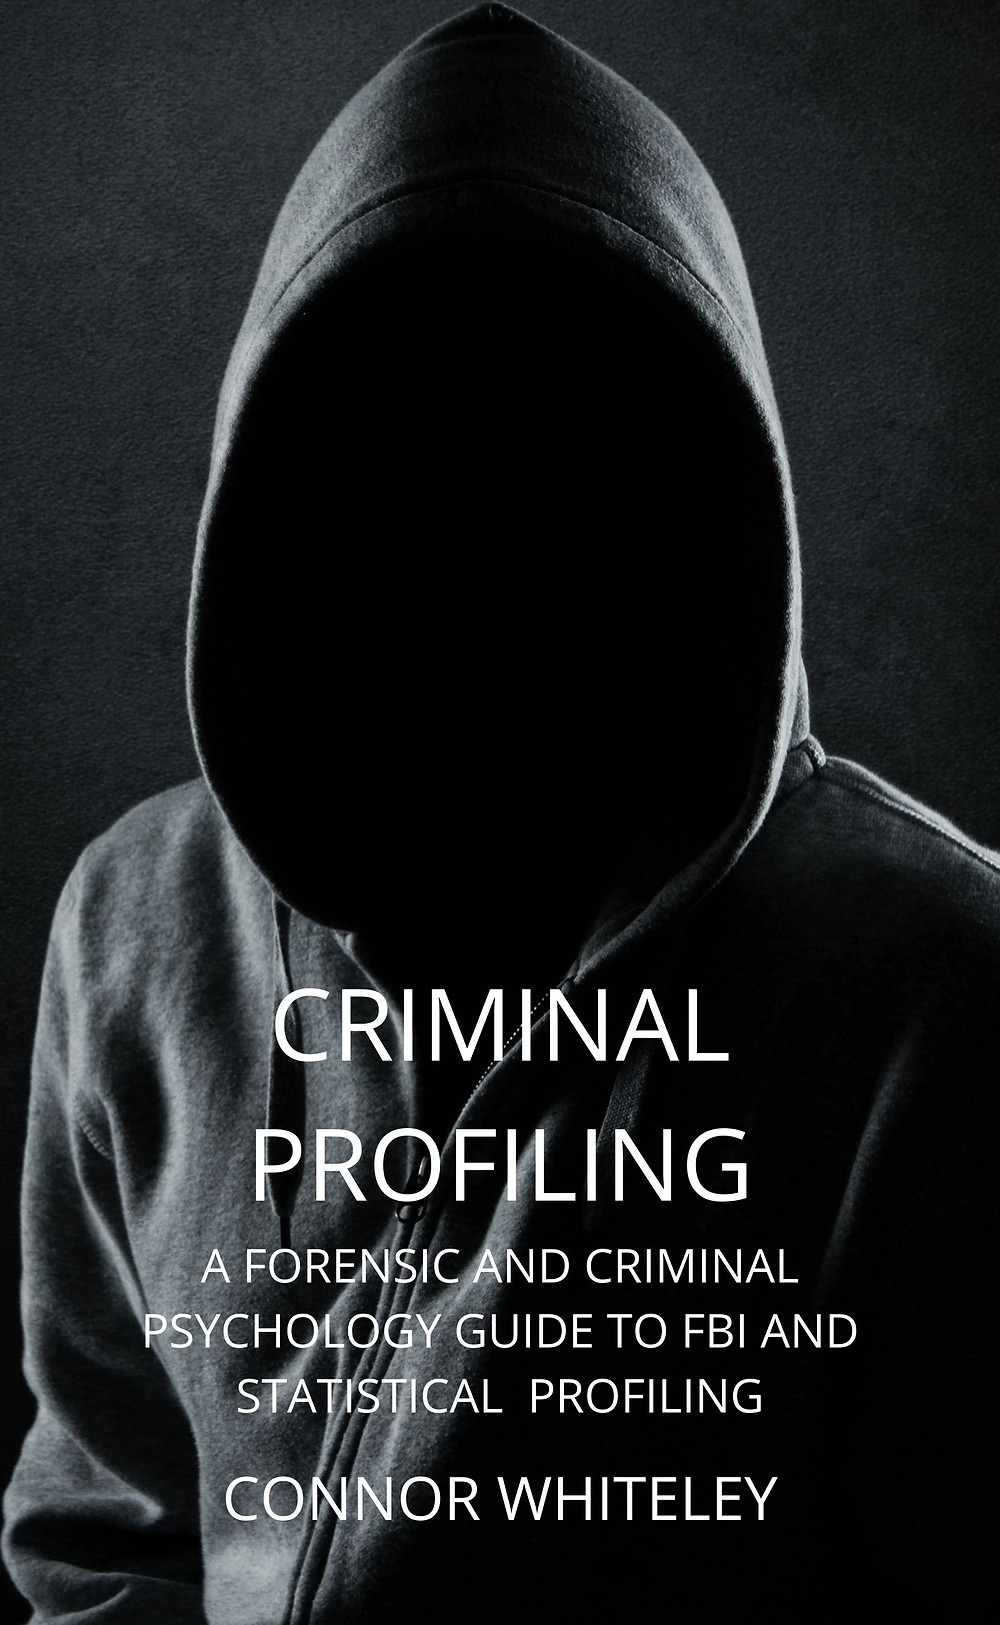 criminal profiling an introduction to fbi profiling by connor whiteley